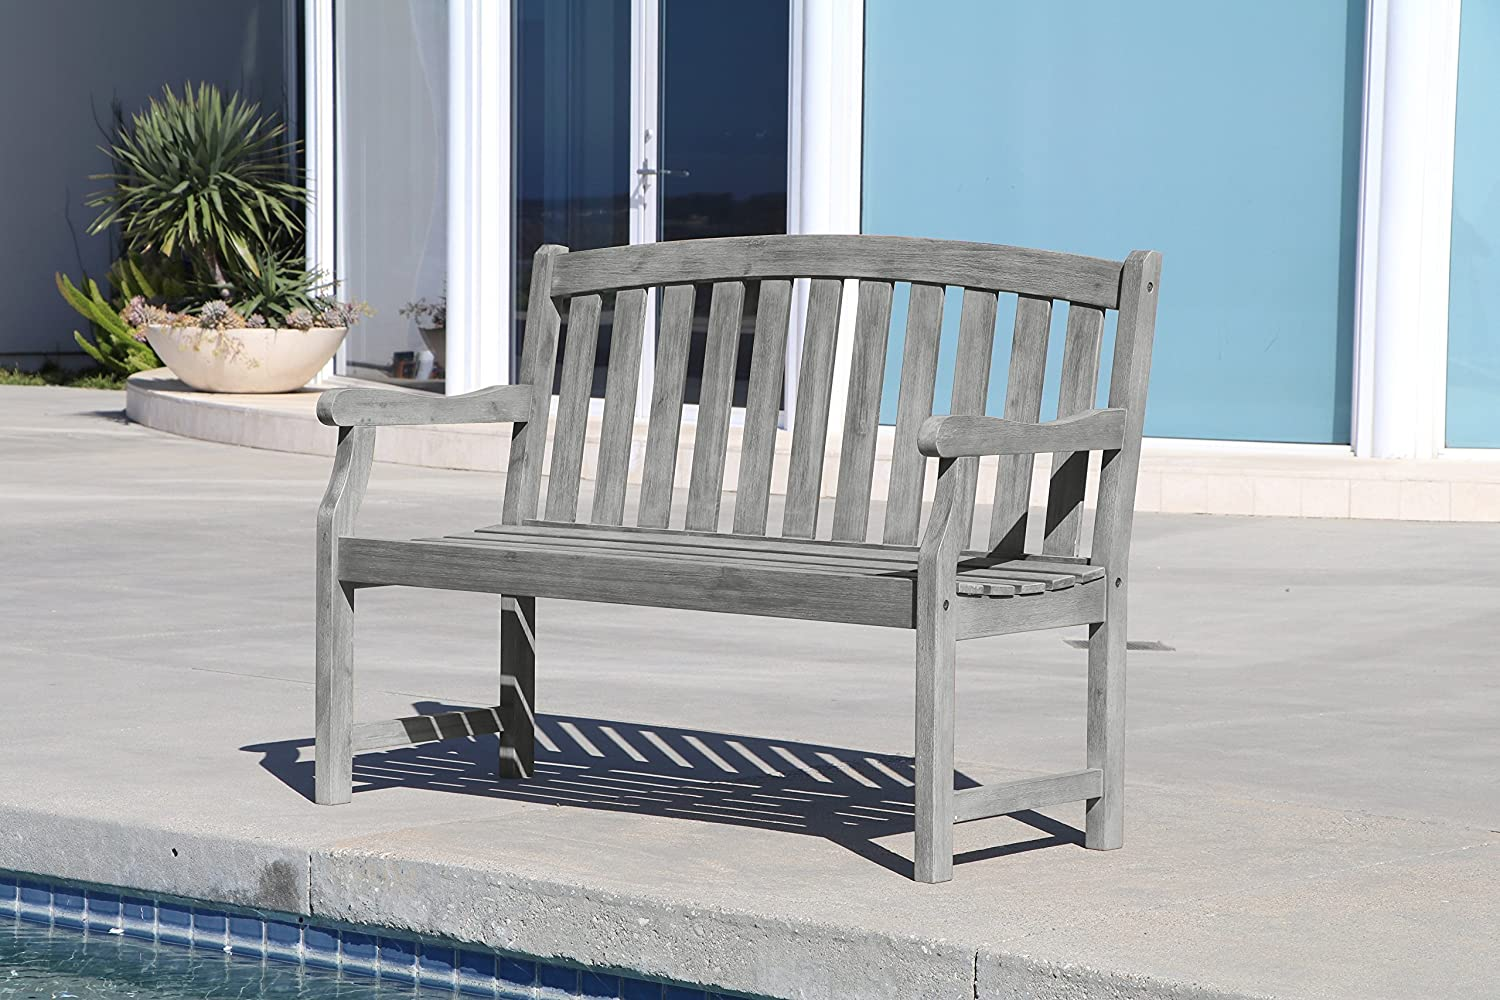 Vifah V1622 Renaissance Outdoor Furniture, Grey-Washed